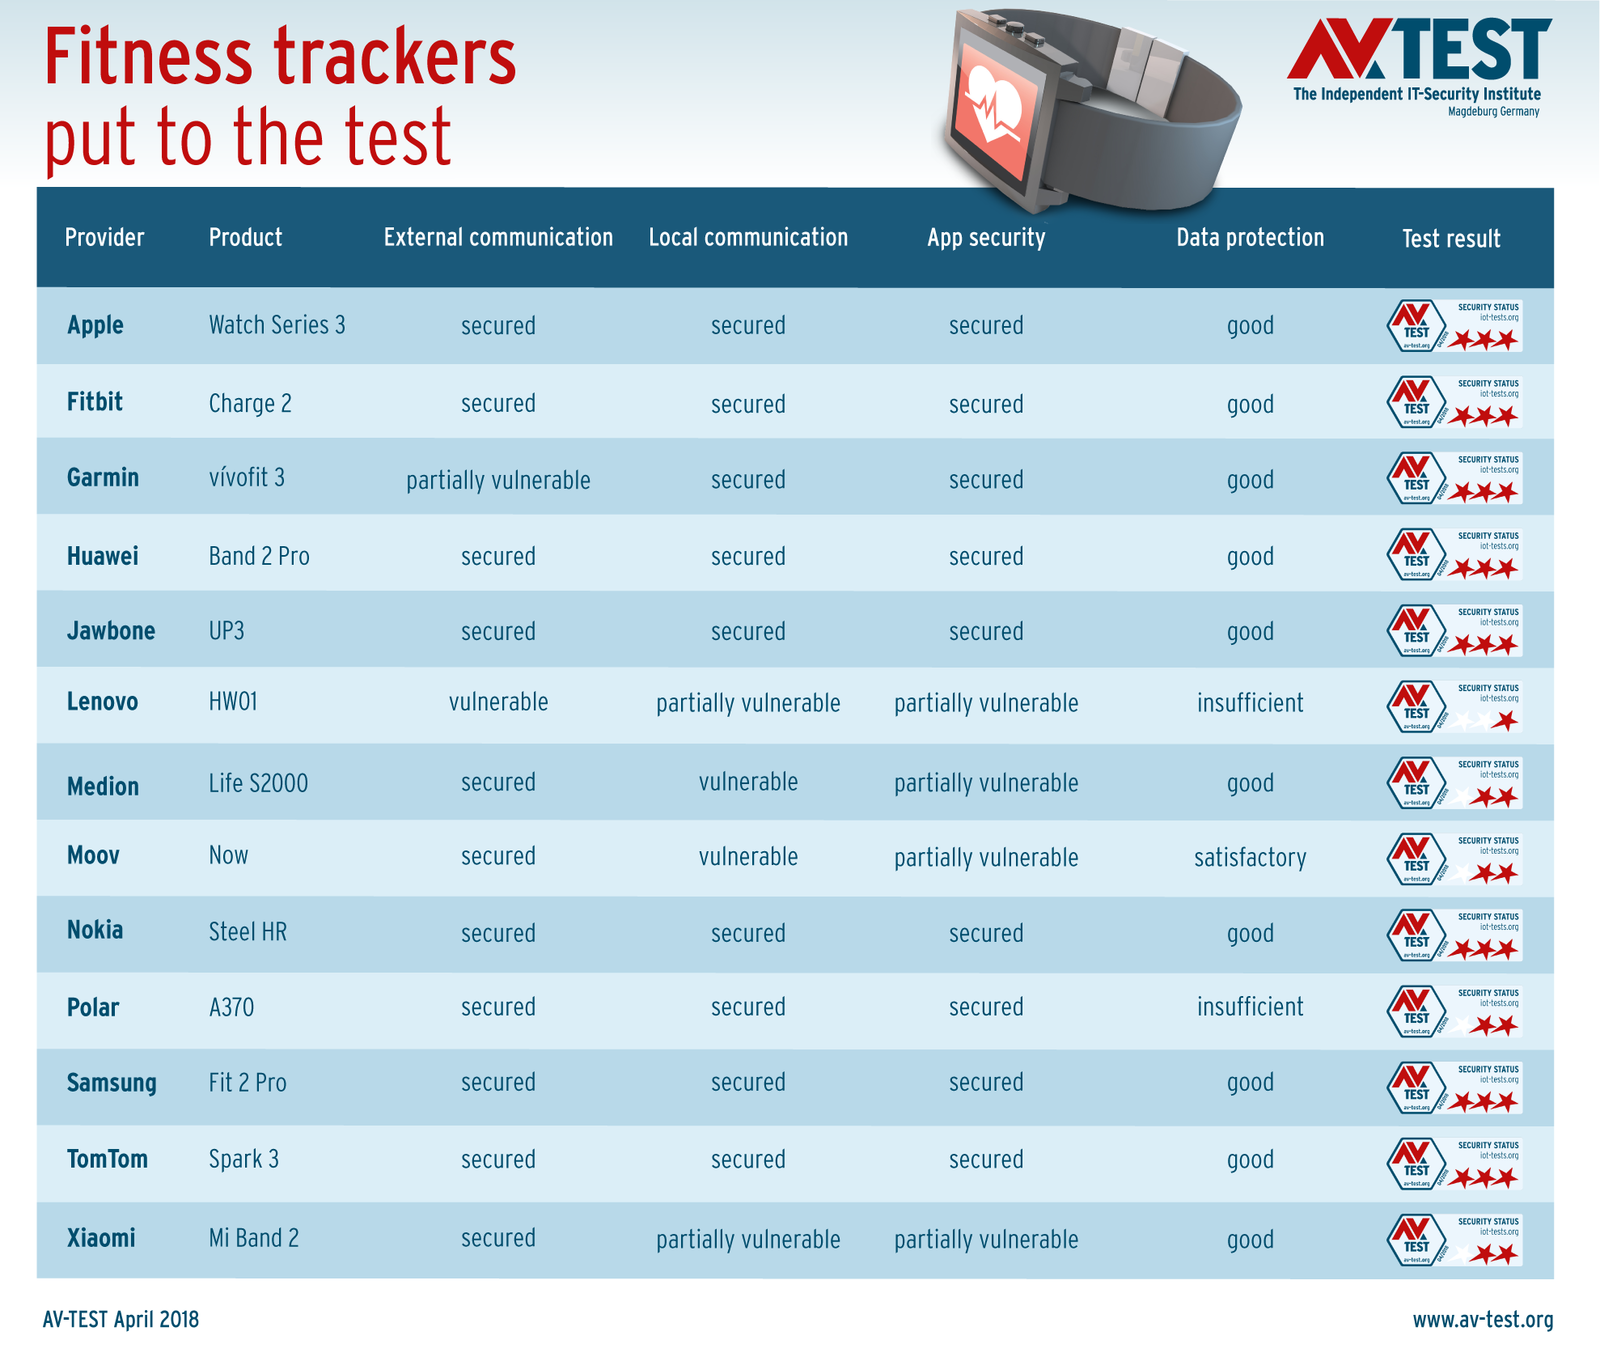 Most Accurate Fitness Tracker >> Fitness Trackers 13 Wearables In A Security Test Av Test